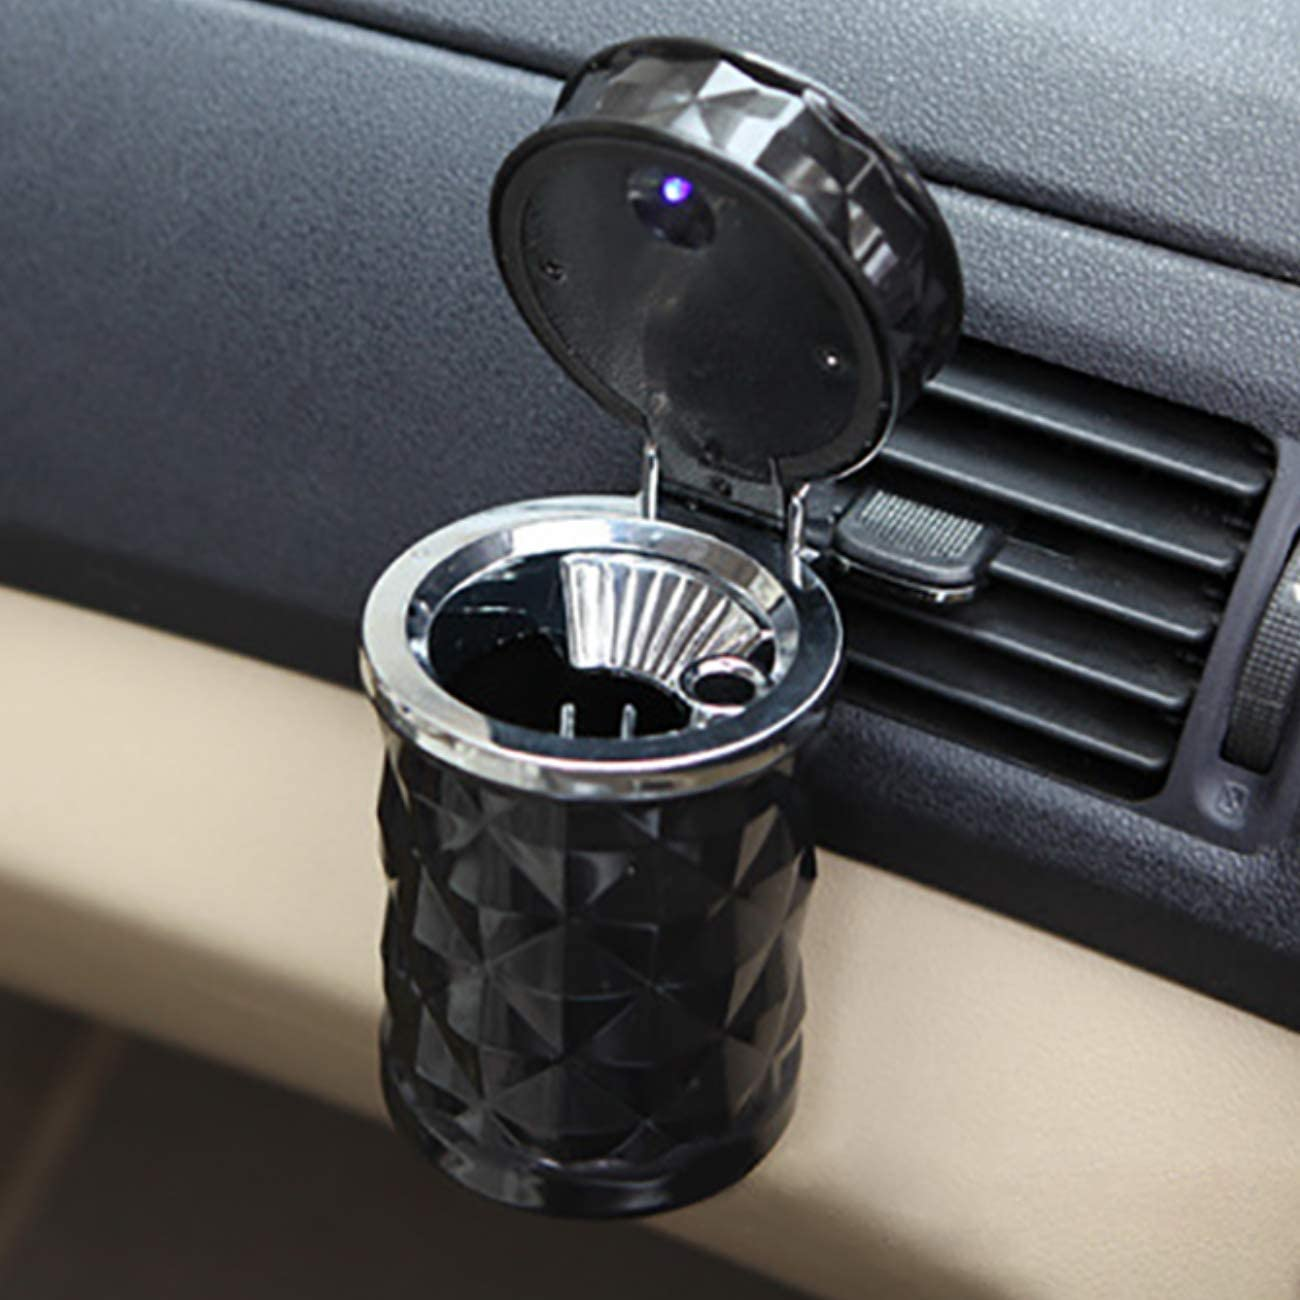 2 Pieces Car Ashtray with Lid Blue LED Light Easy Clean up Detachable Stainless Car Ashtray Portable for Most Car Cup Holder Home Office and Travel